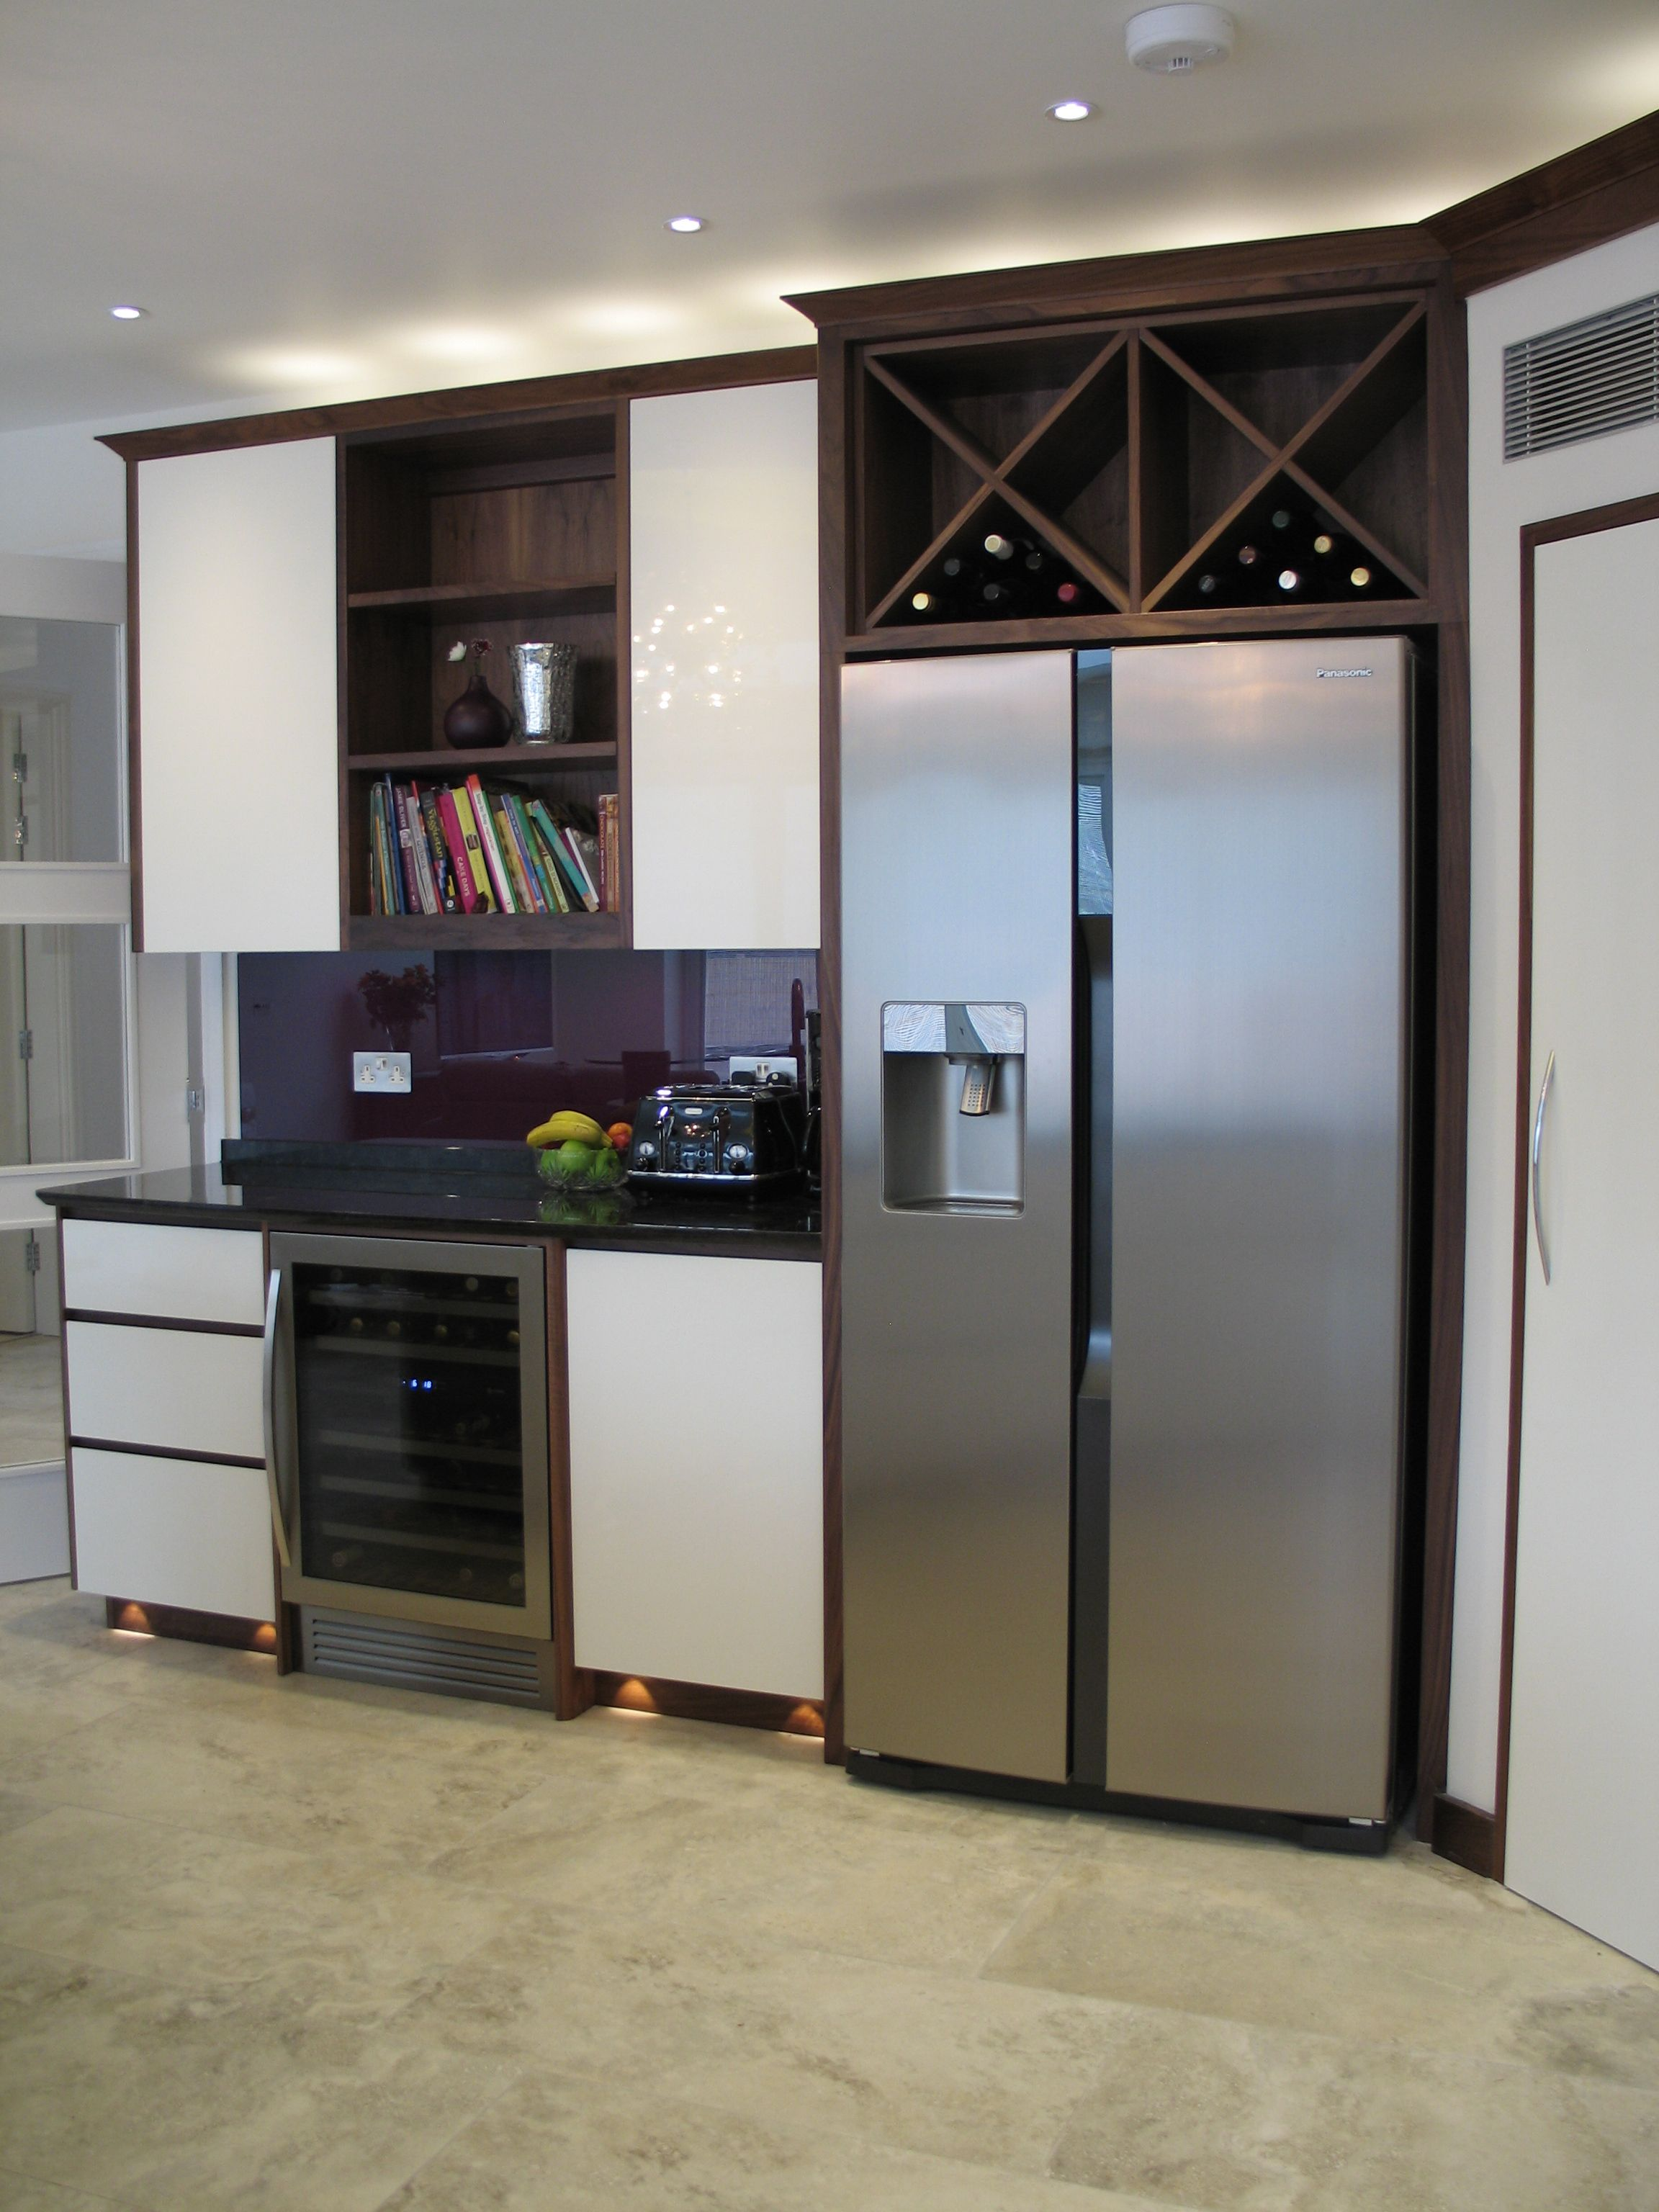 The fridge run. With fridge freezer and wine cooler, loads of storage and a stunning purple glass splashback. Take a look at our website for more eyecatching designs.